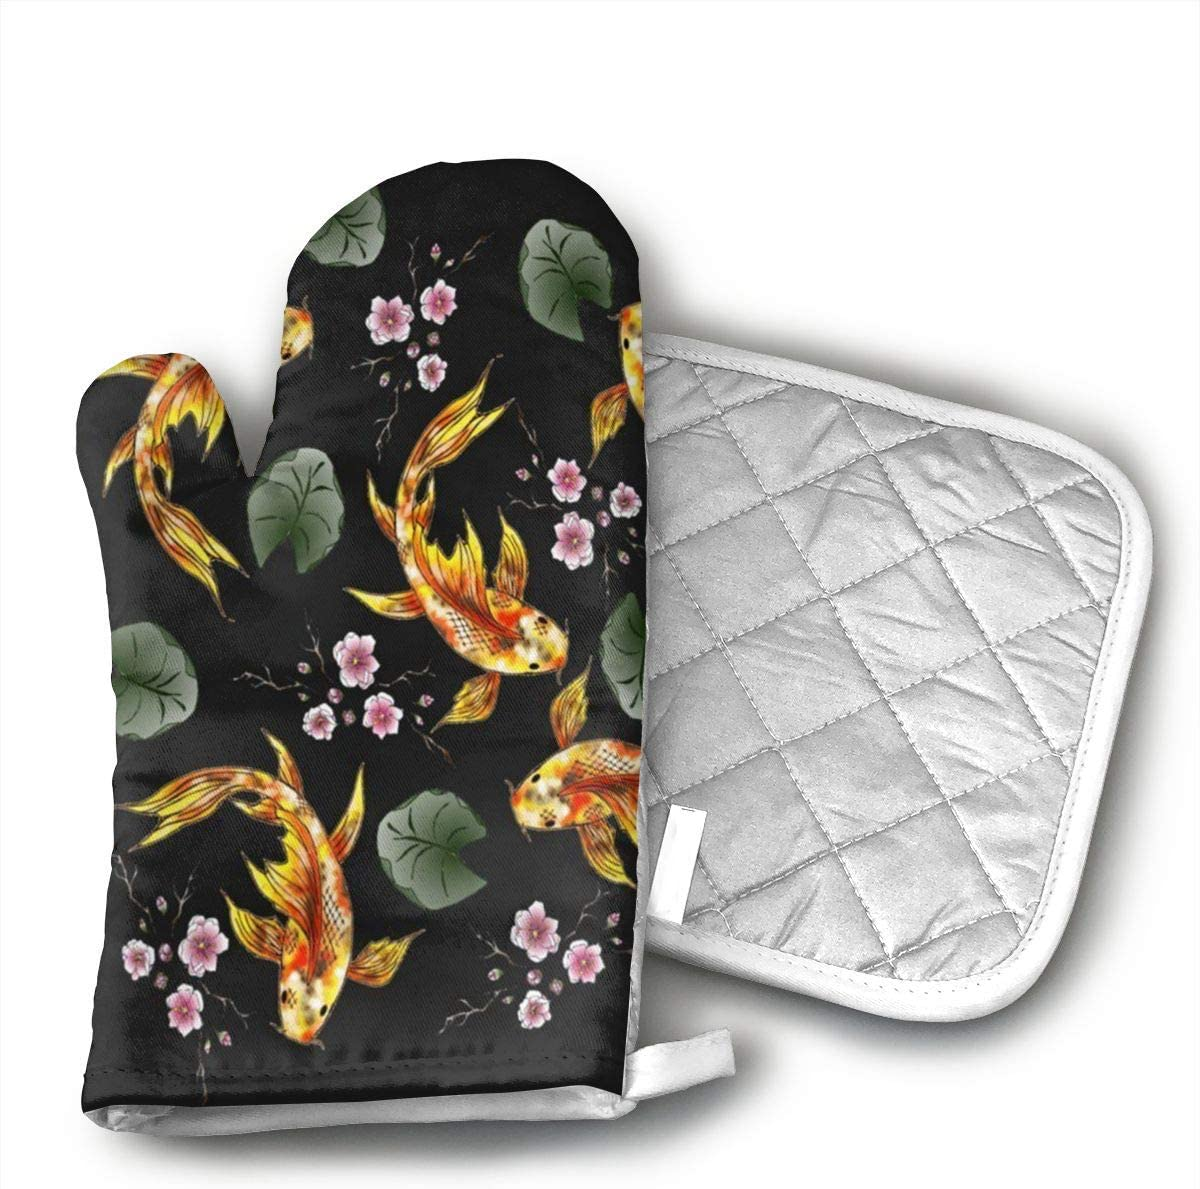 Klasl5 Gold Fish and Cherry Blossoms Oven Mitts,Heat Resistant Oven Gloves,Non-Slip Cooking Gloves,Washable Kitchen Mitts for Baking, Barbecue.